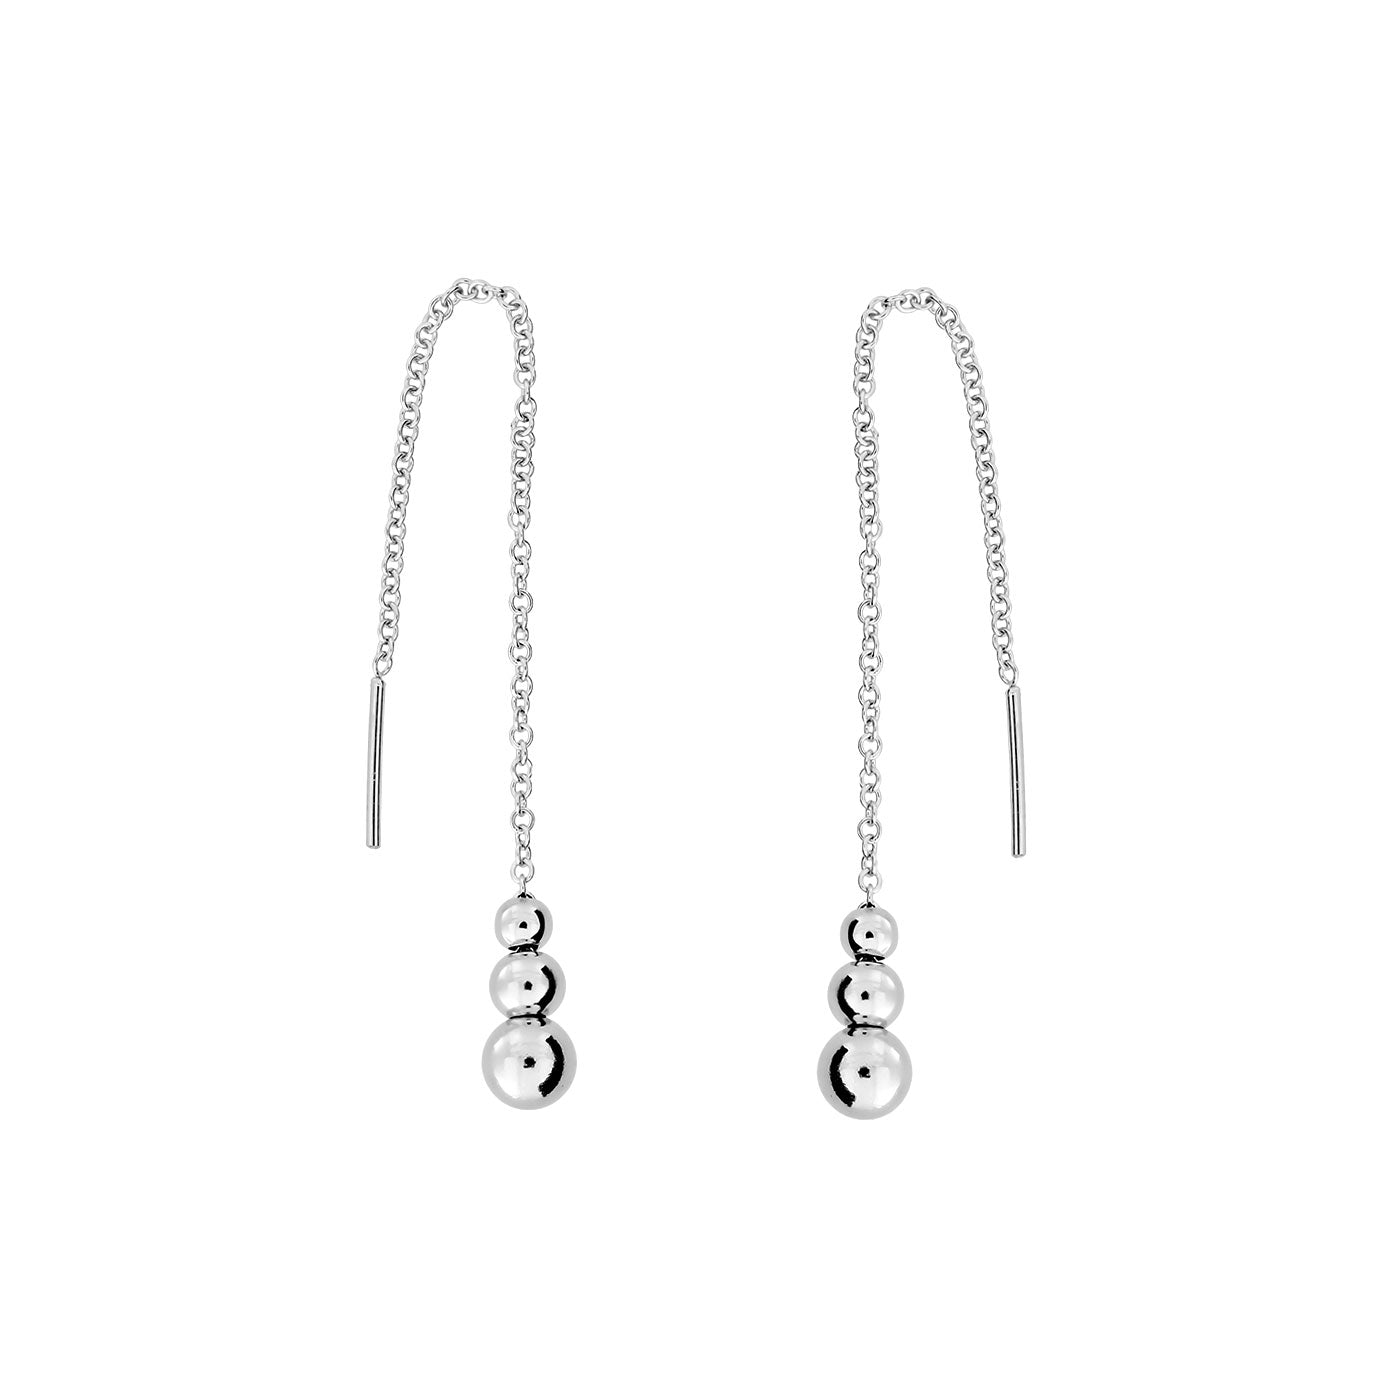 Silver Triple Bead Threader Earring